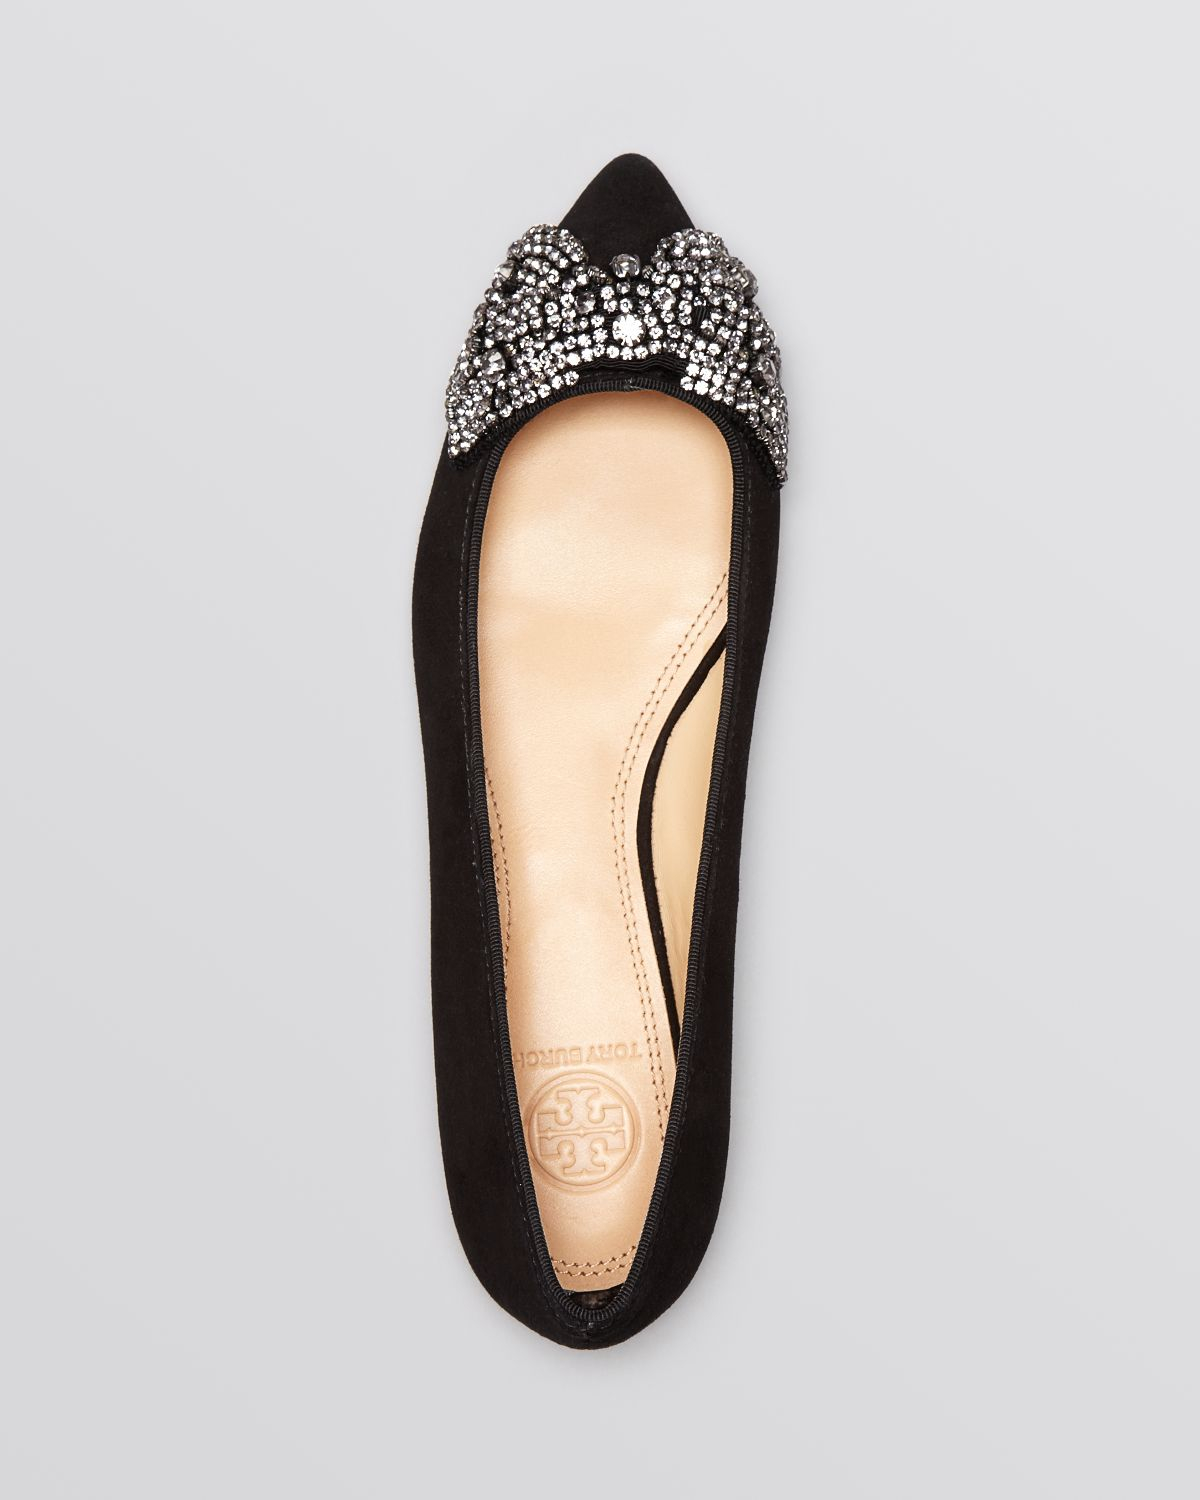 8cbb97de768 ... new style lyst tory burch pointed toe flats vanessa crystal bow in blue  7013a 14cab ...